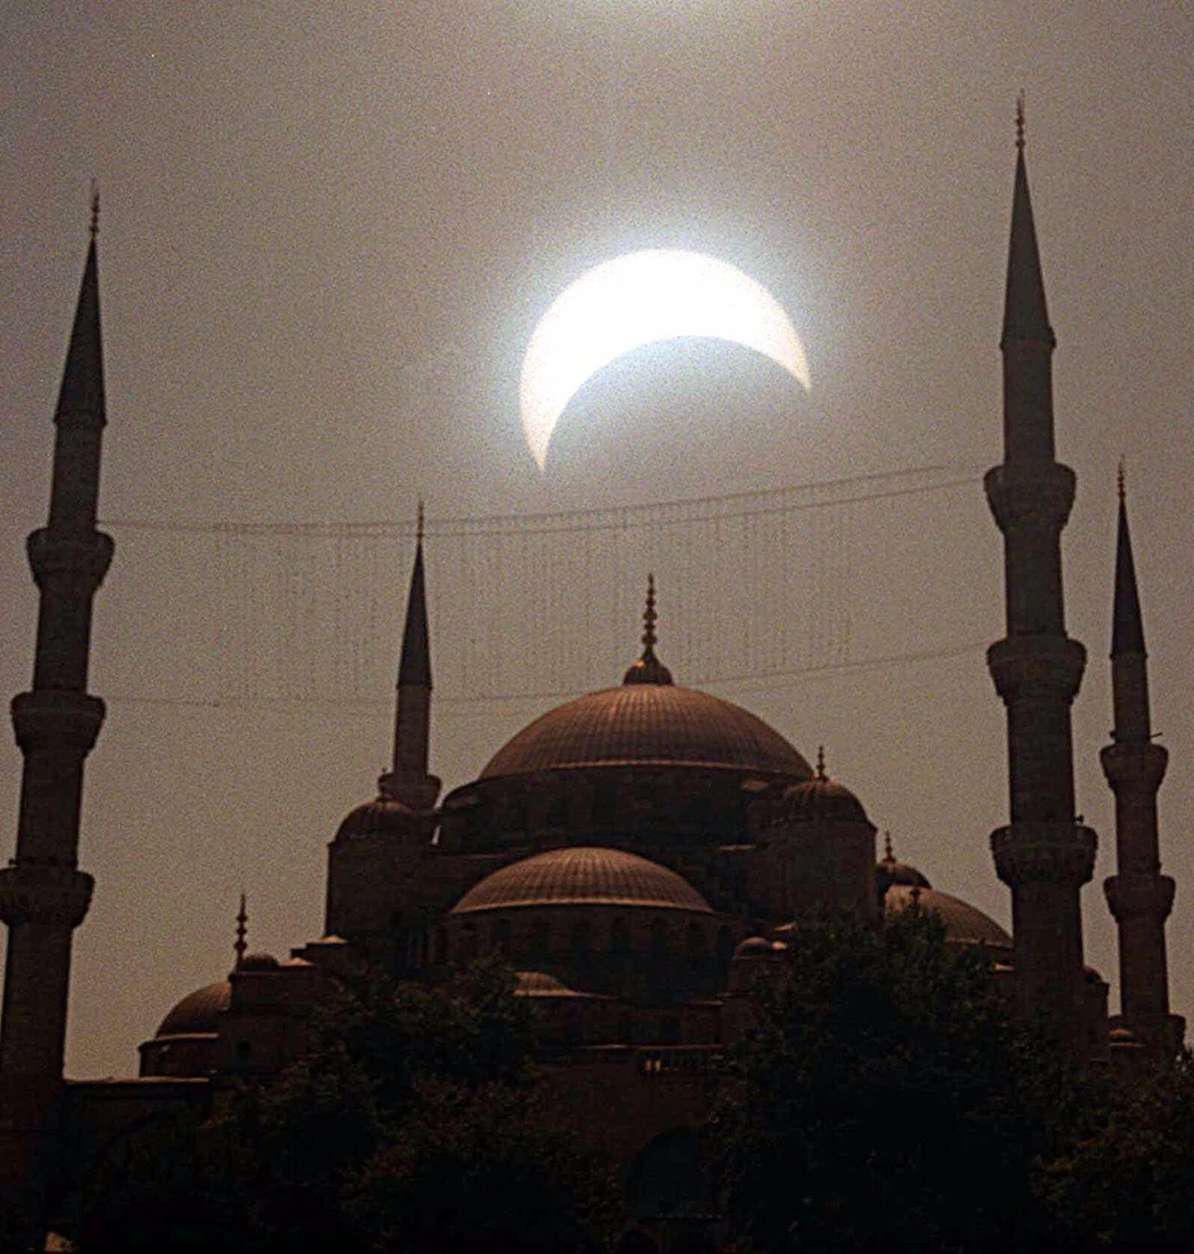 The solar eclipse is seen between the minarets of the historical Blue Mosque in Istanbul, Turkey on Wednesday August 11, 1999. This is the last solar eclipse of this millenium, which swept accross Europe towards the Bay of Bengal. (AP Photo/Erhan Sevenler/Anatolia)